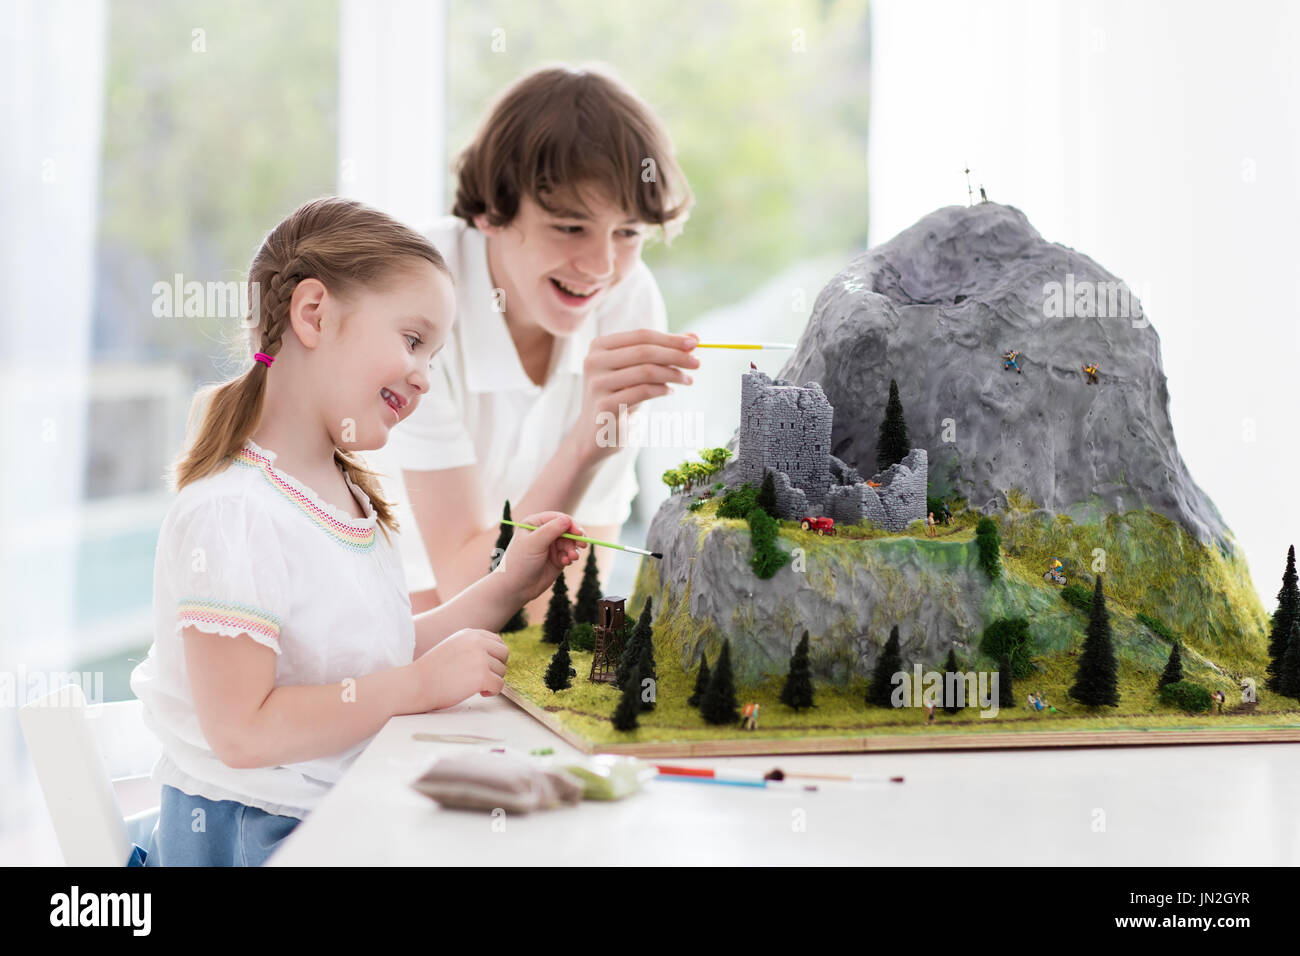 Children work on model building school project. Kids build miniature scale model mountain for geography class. Extracurricular activities and hobby cl - Stock Image